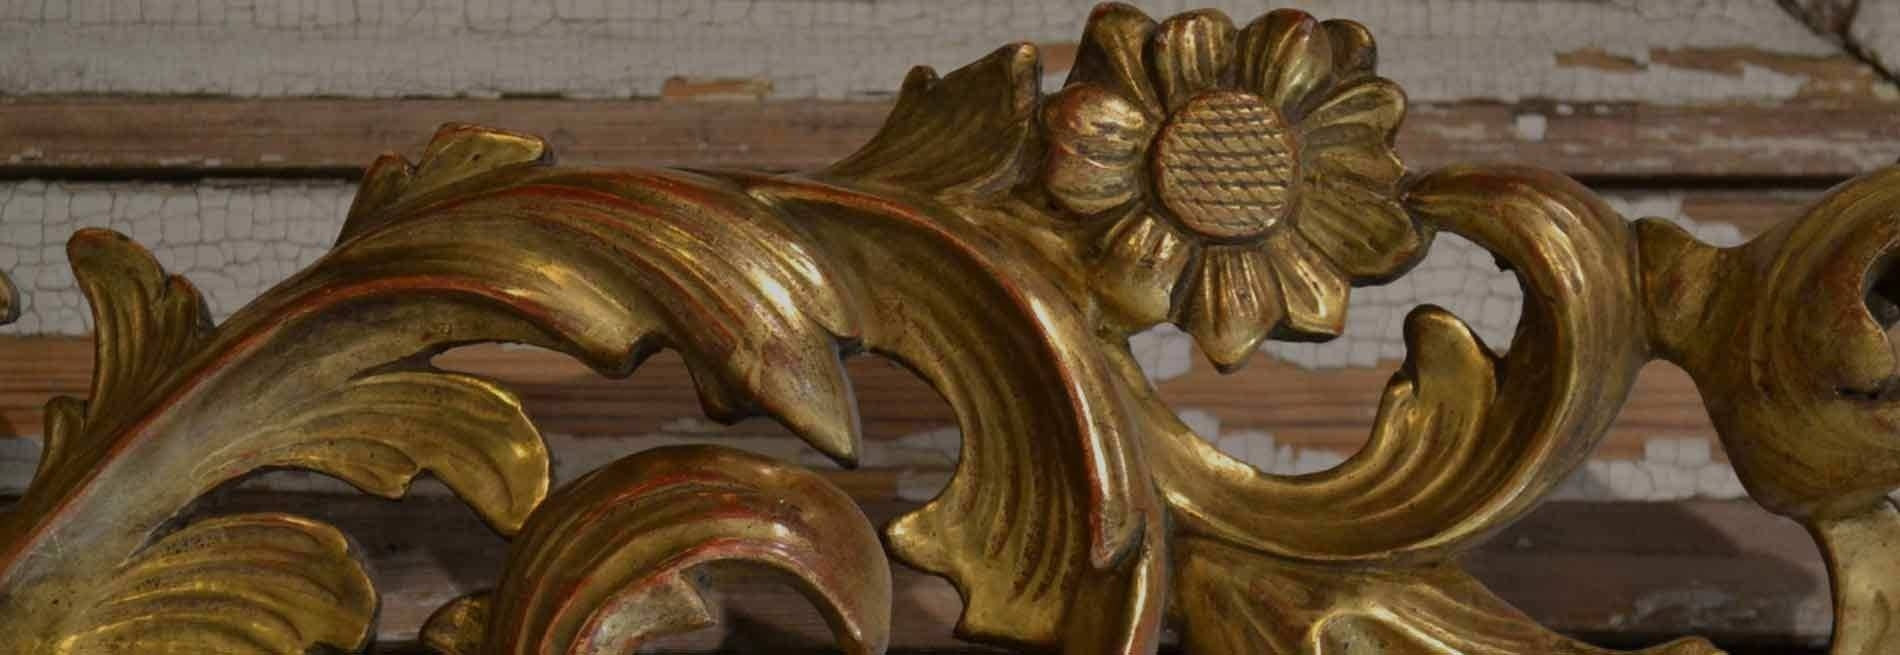 French Antique Mirrors: Gilding Workshop throughout Gold French Mirrors (Image 12 of 15)